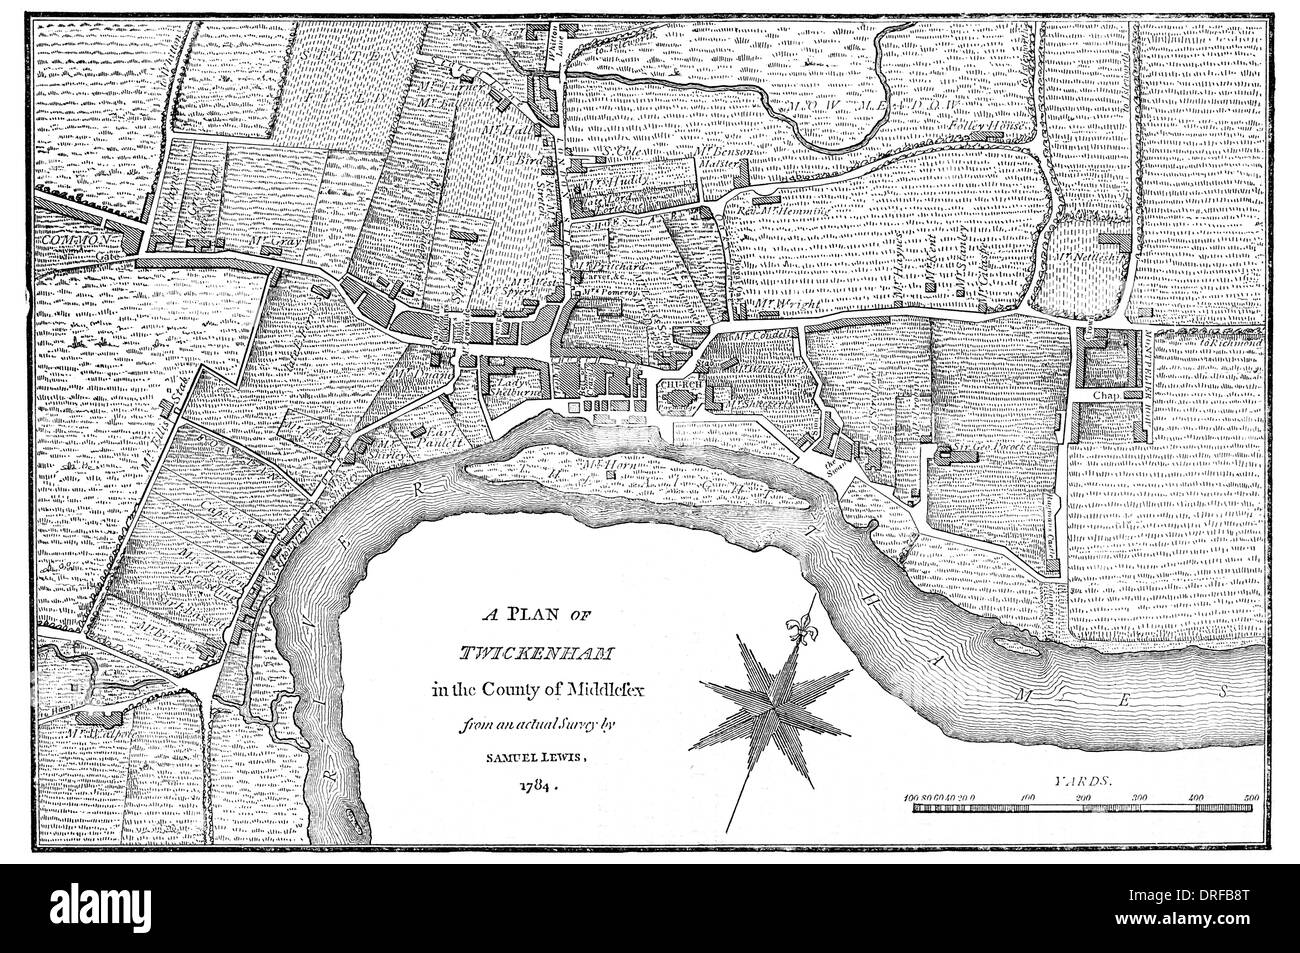 A plan of Twickenham in the County of Middlesex. London From an actual survey by Samuel Lewis 1784 - Stock Image